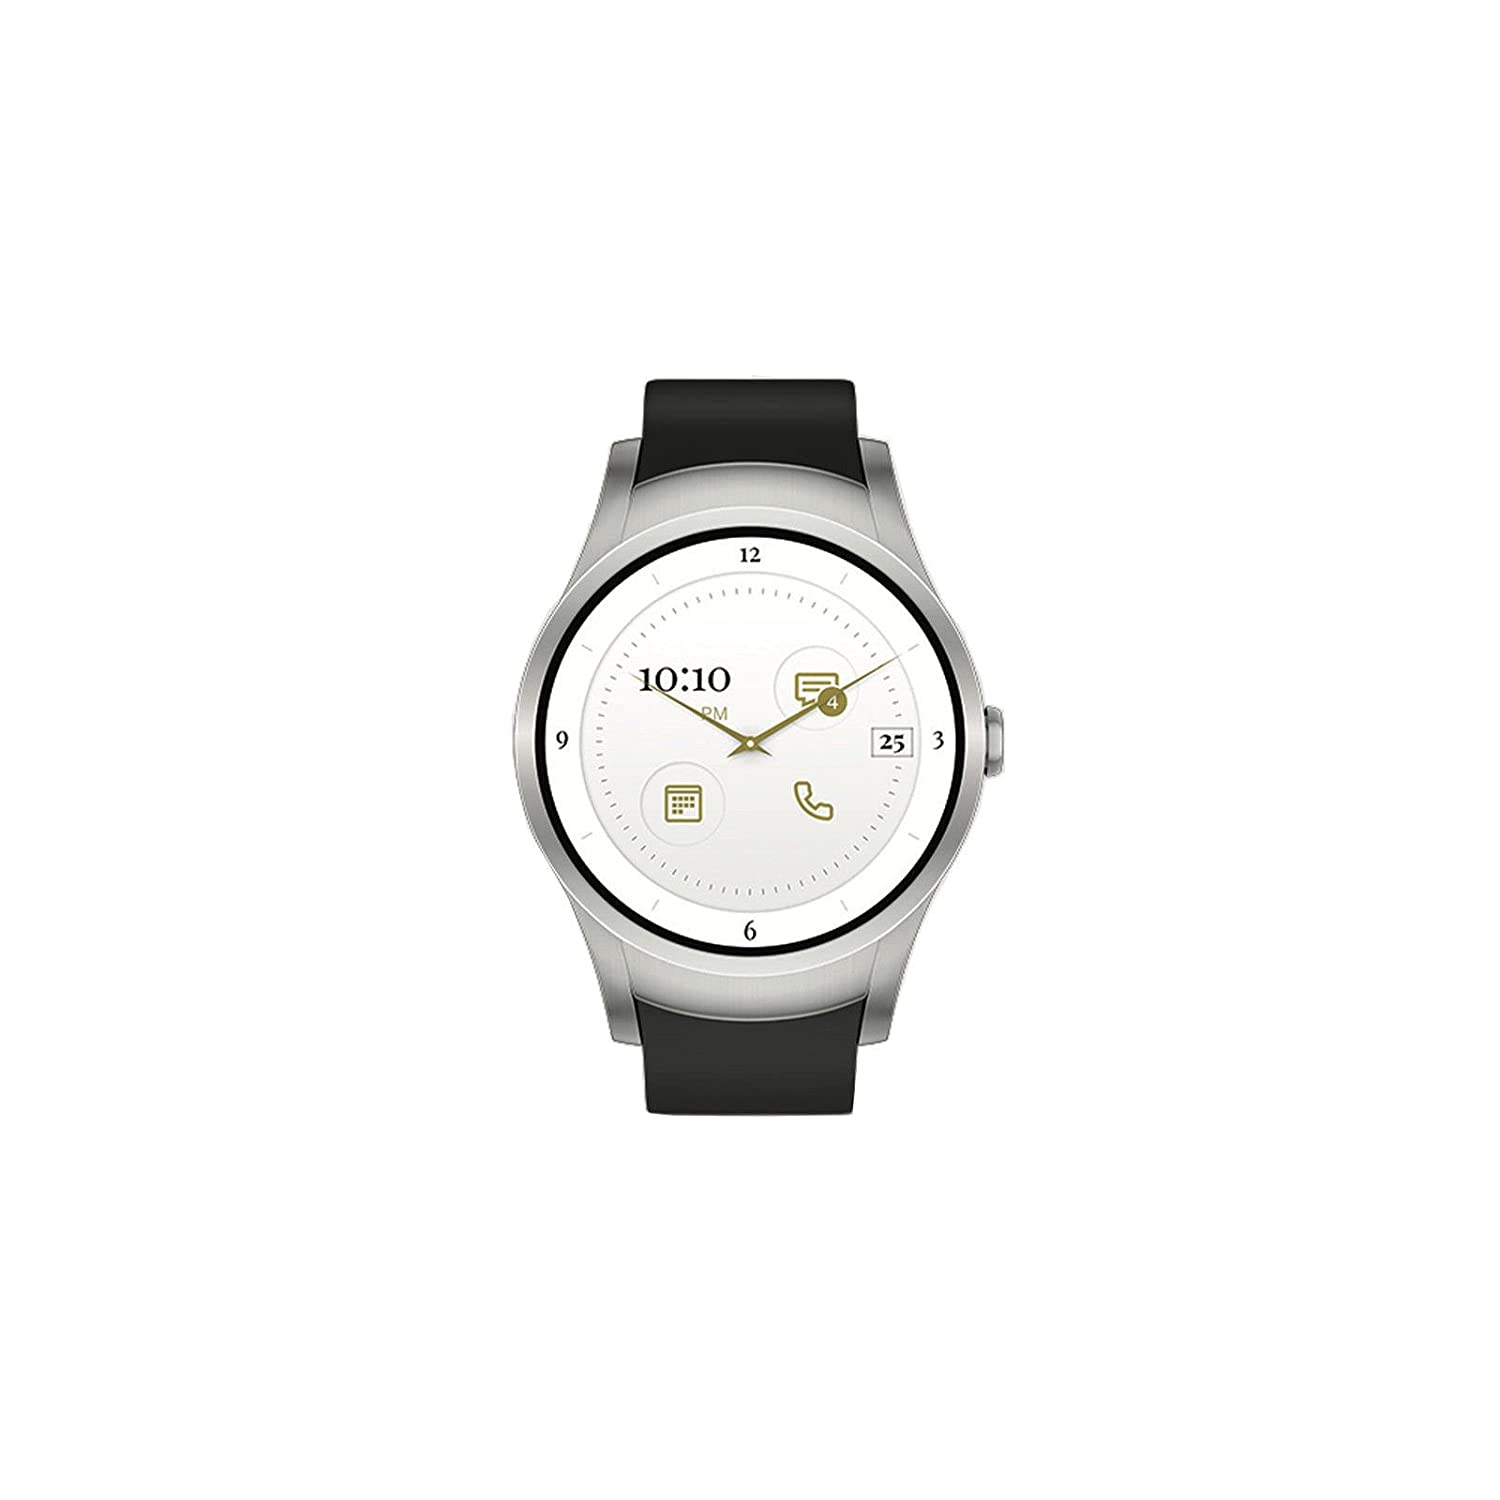 Amazon.com: Wear24 Android Wear 2.0 42mm 4G LTE WiFi+ ...